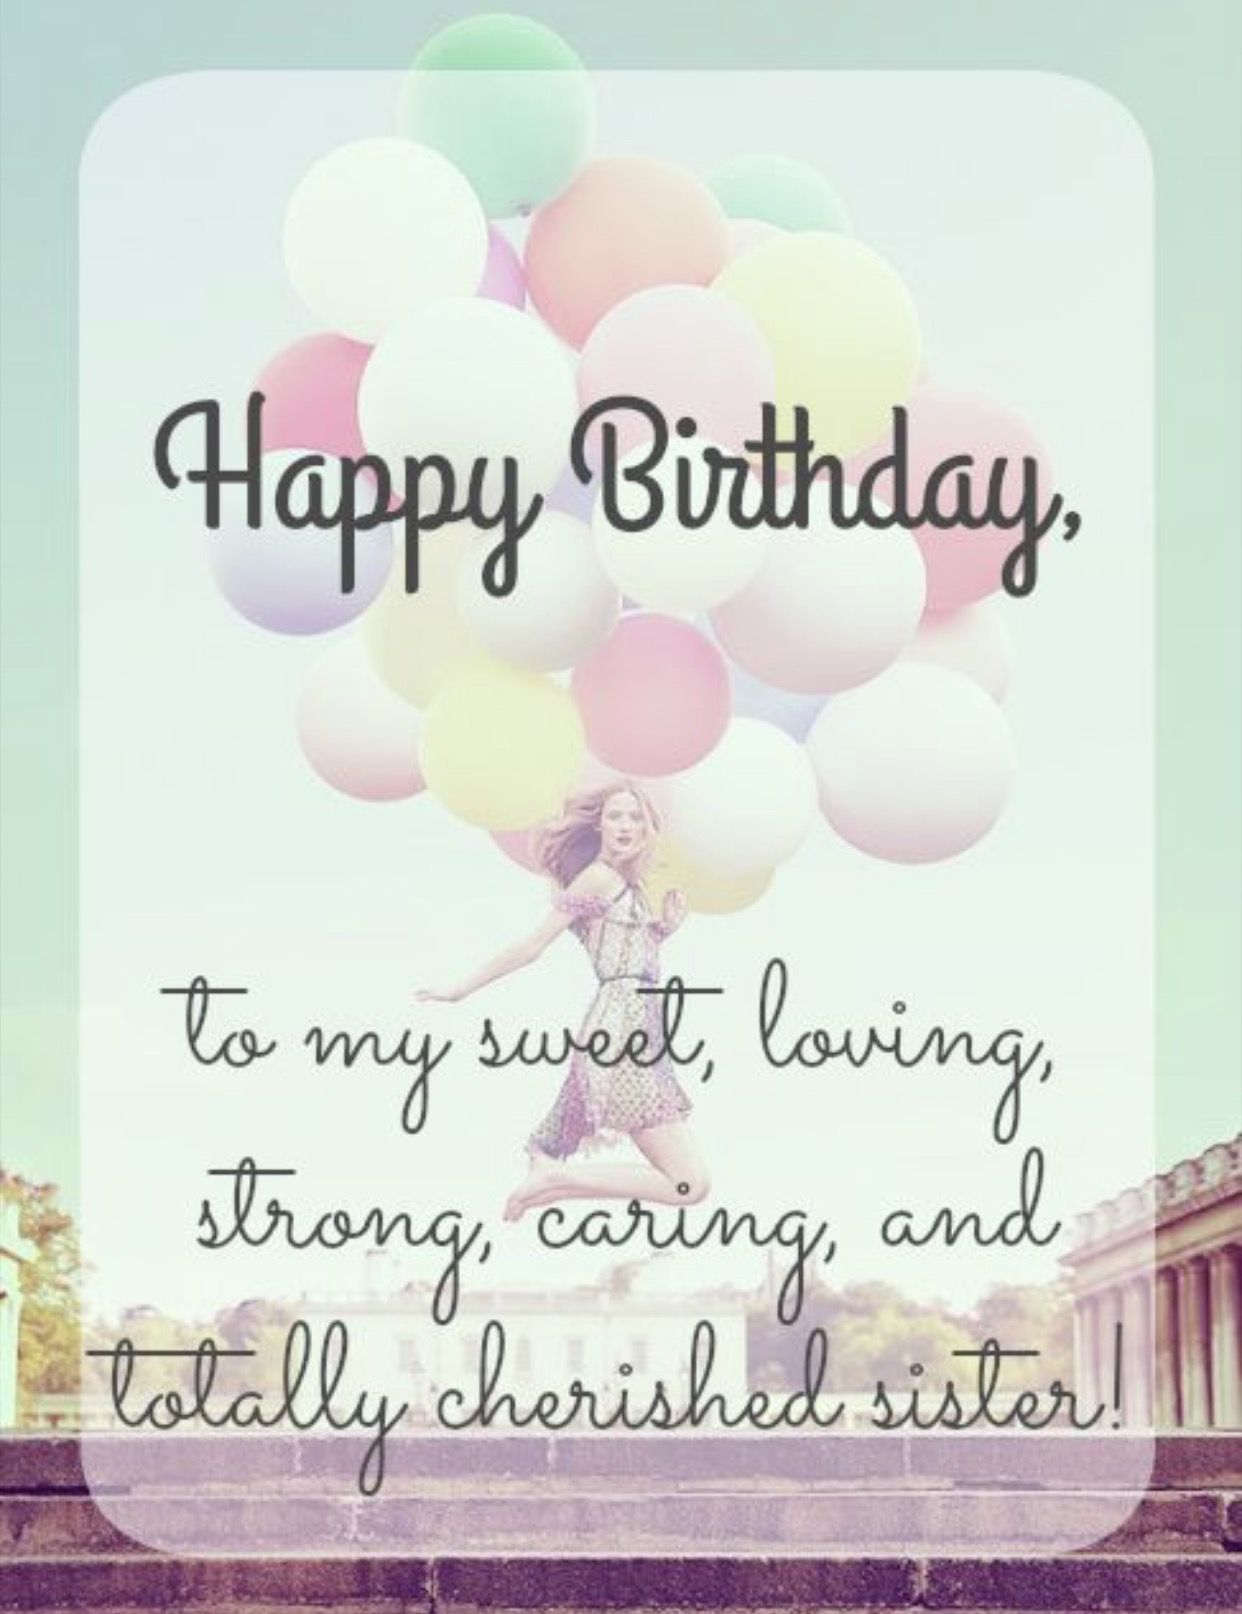 Pin By Rajvir Kaur On Bday Wishes For Sis Pinterest